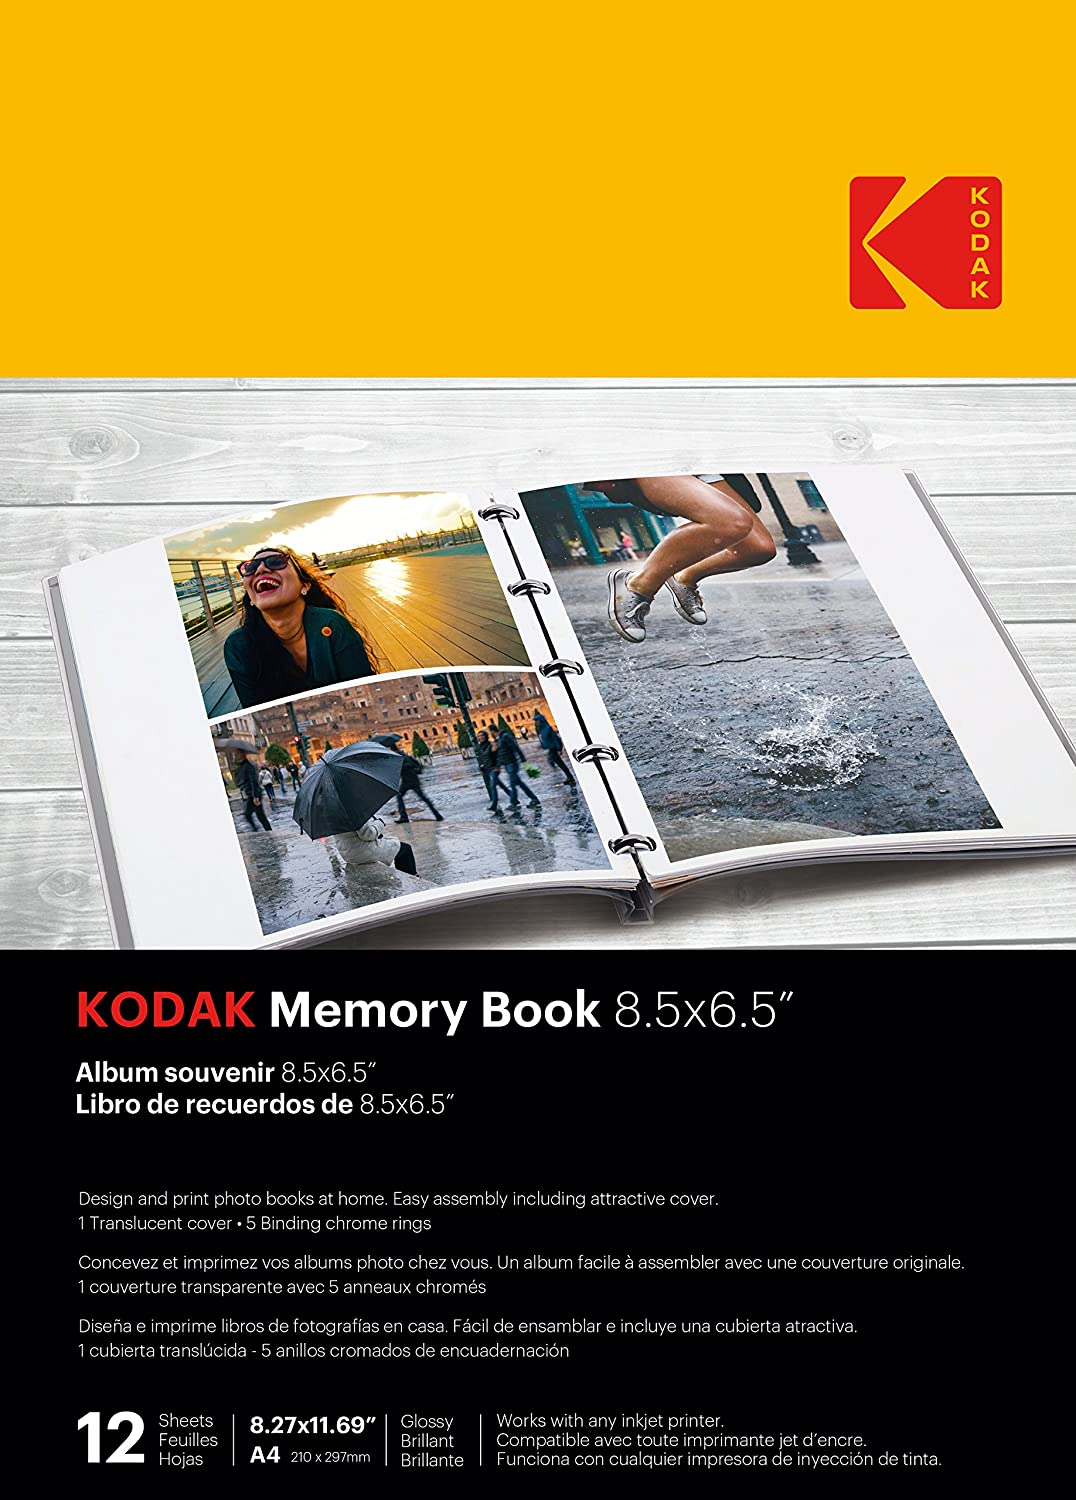 Amazon.com: Kodak Memory Book 8.5